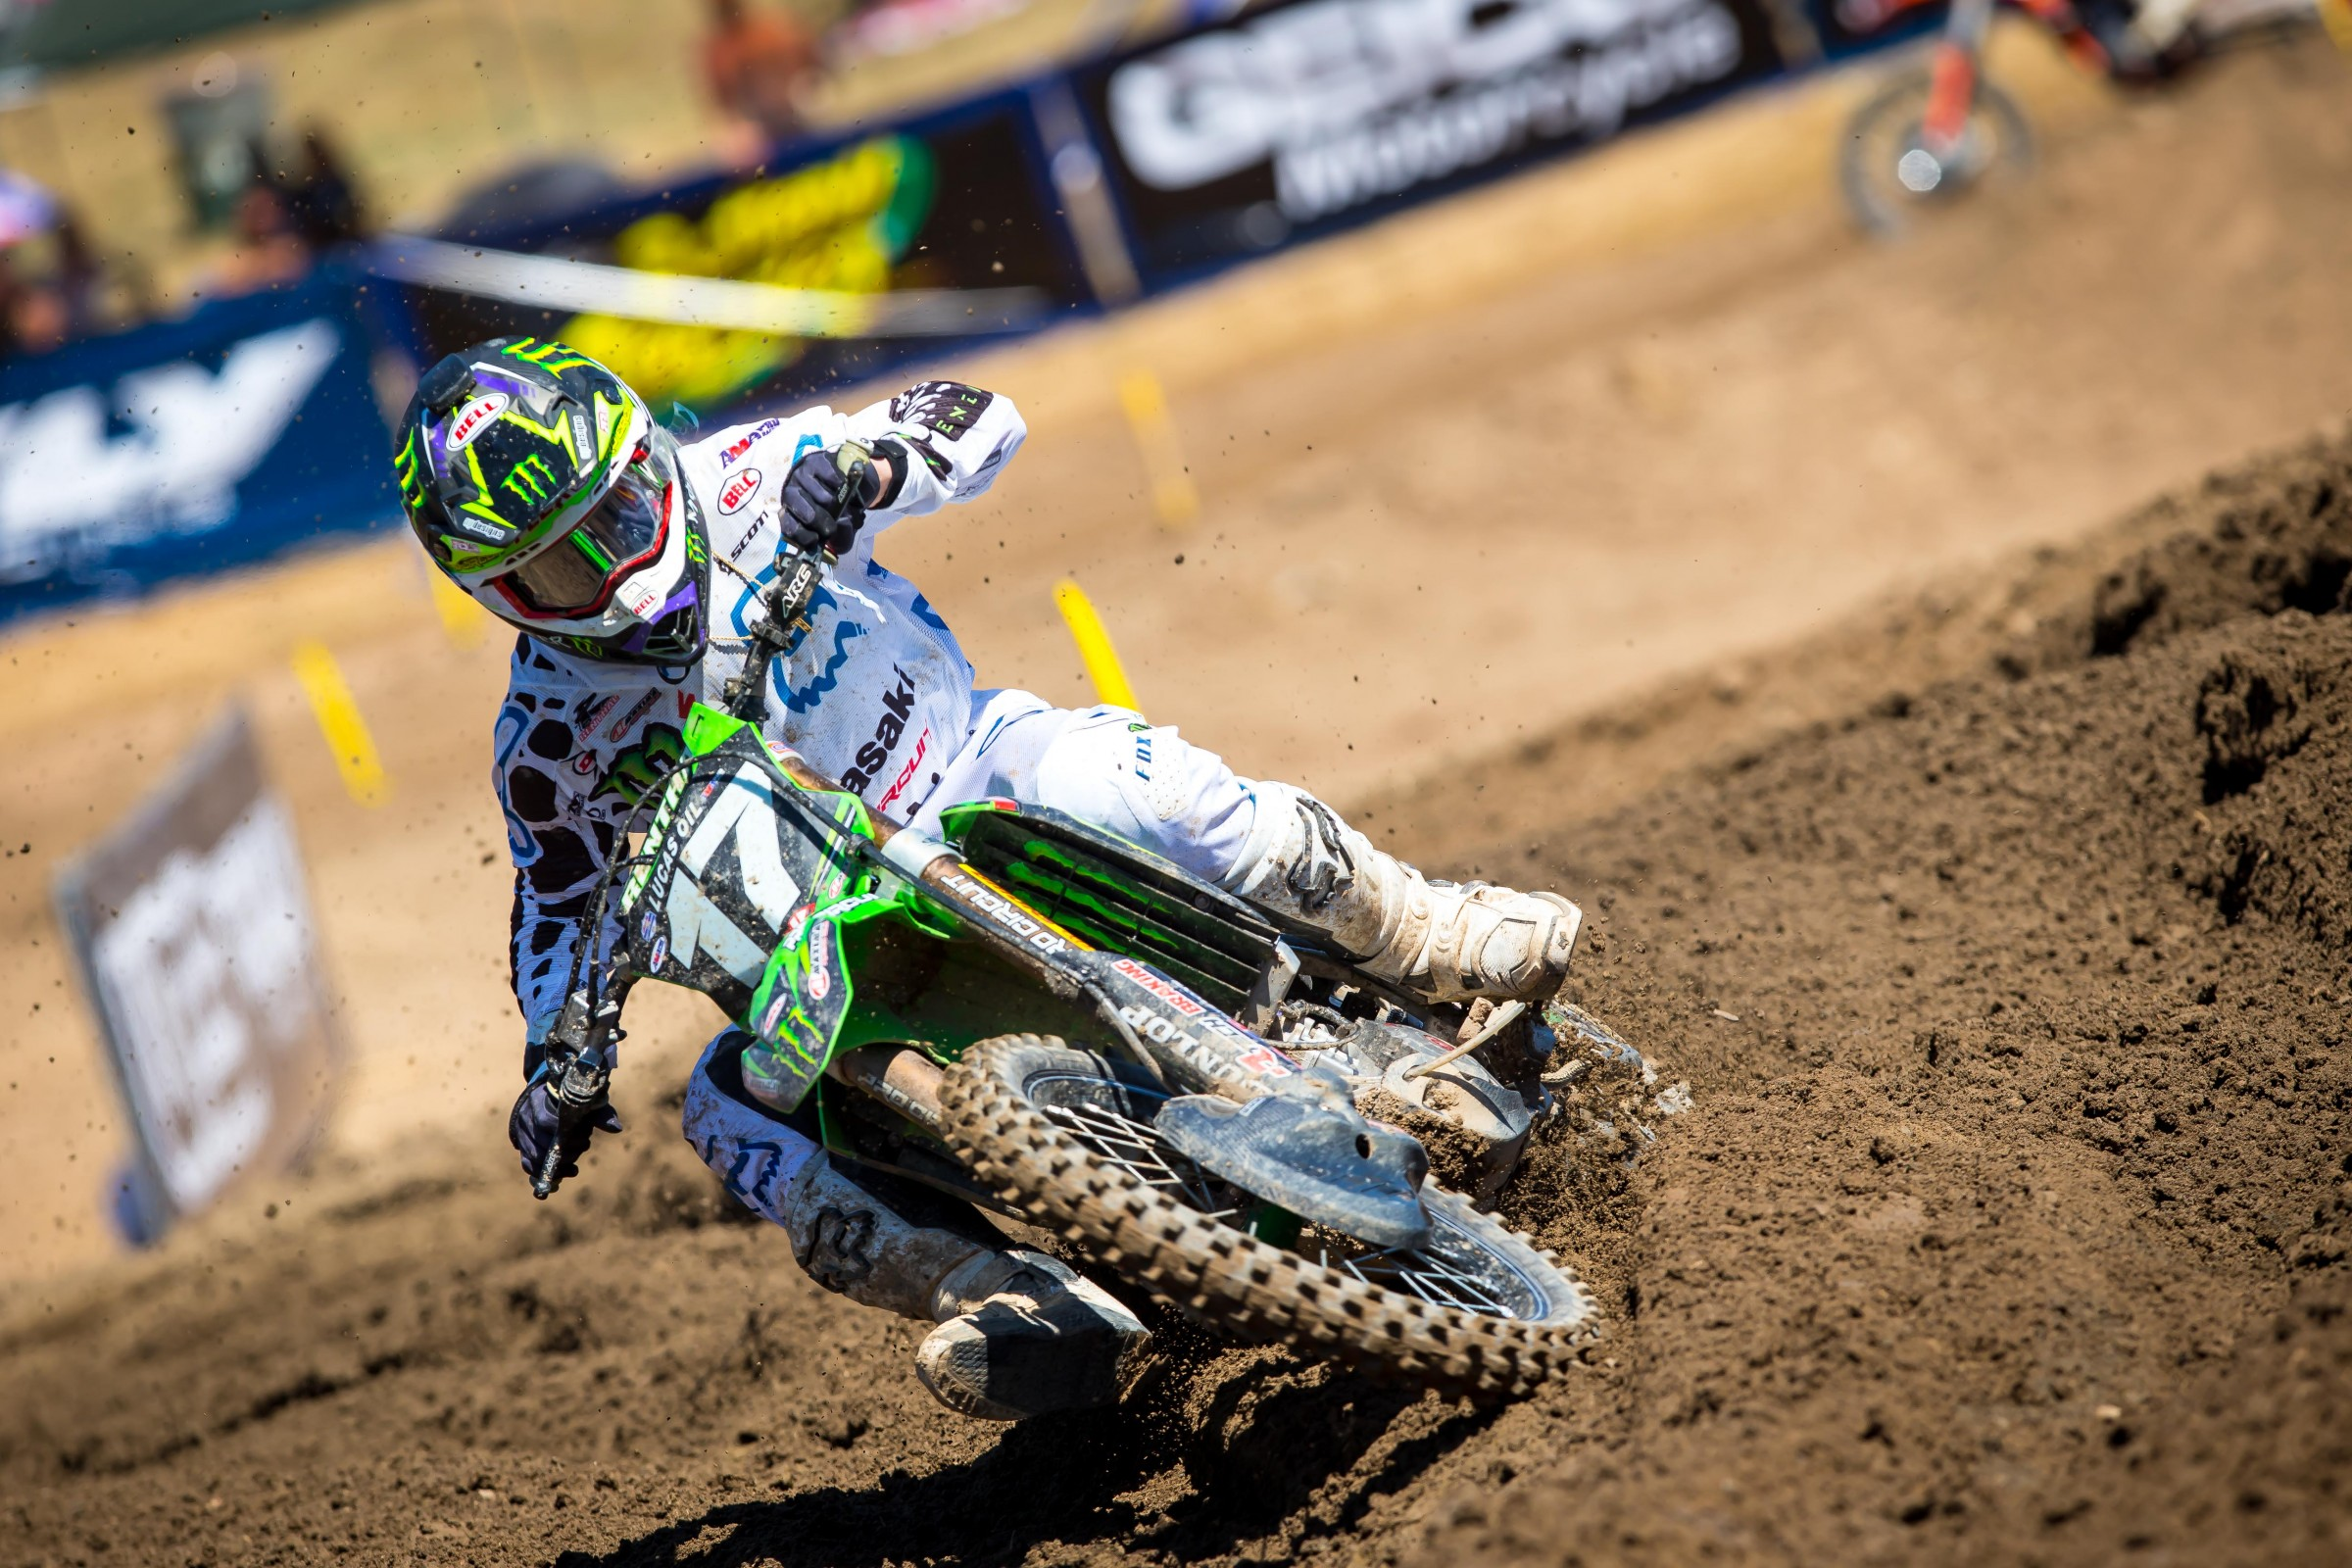 Savatgy is in a 22-point hole going into the second round at Glen Helen.